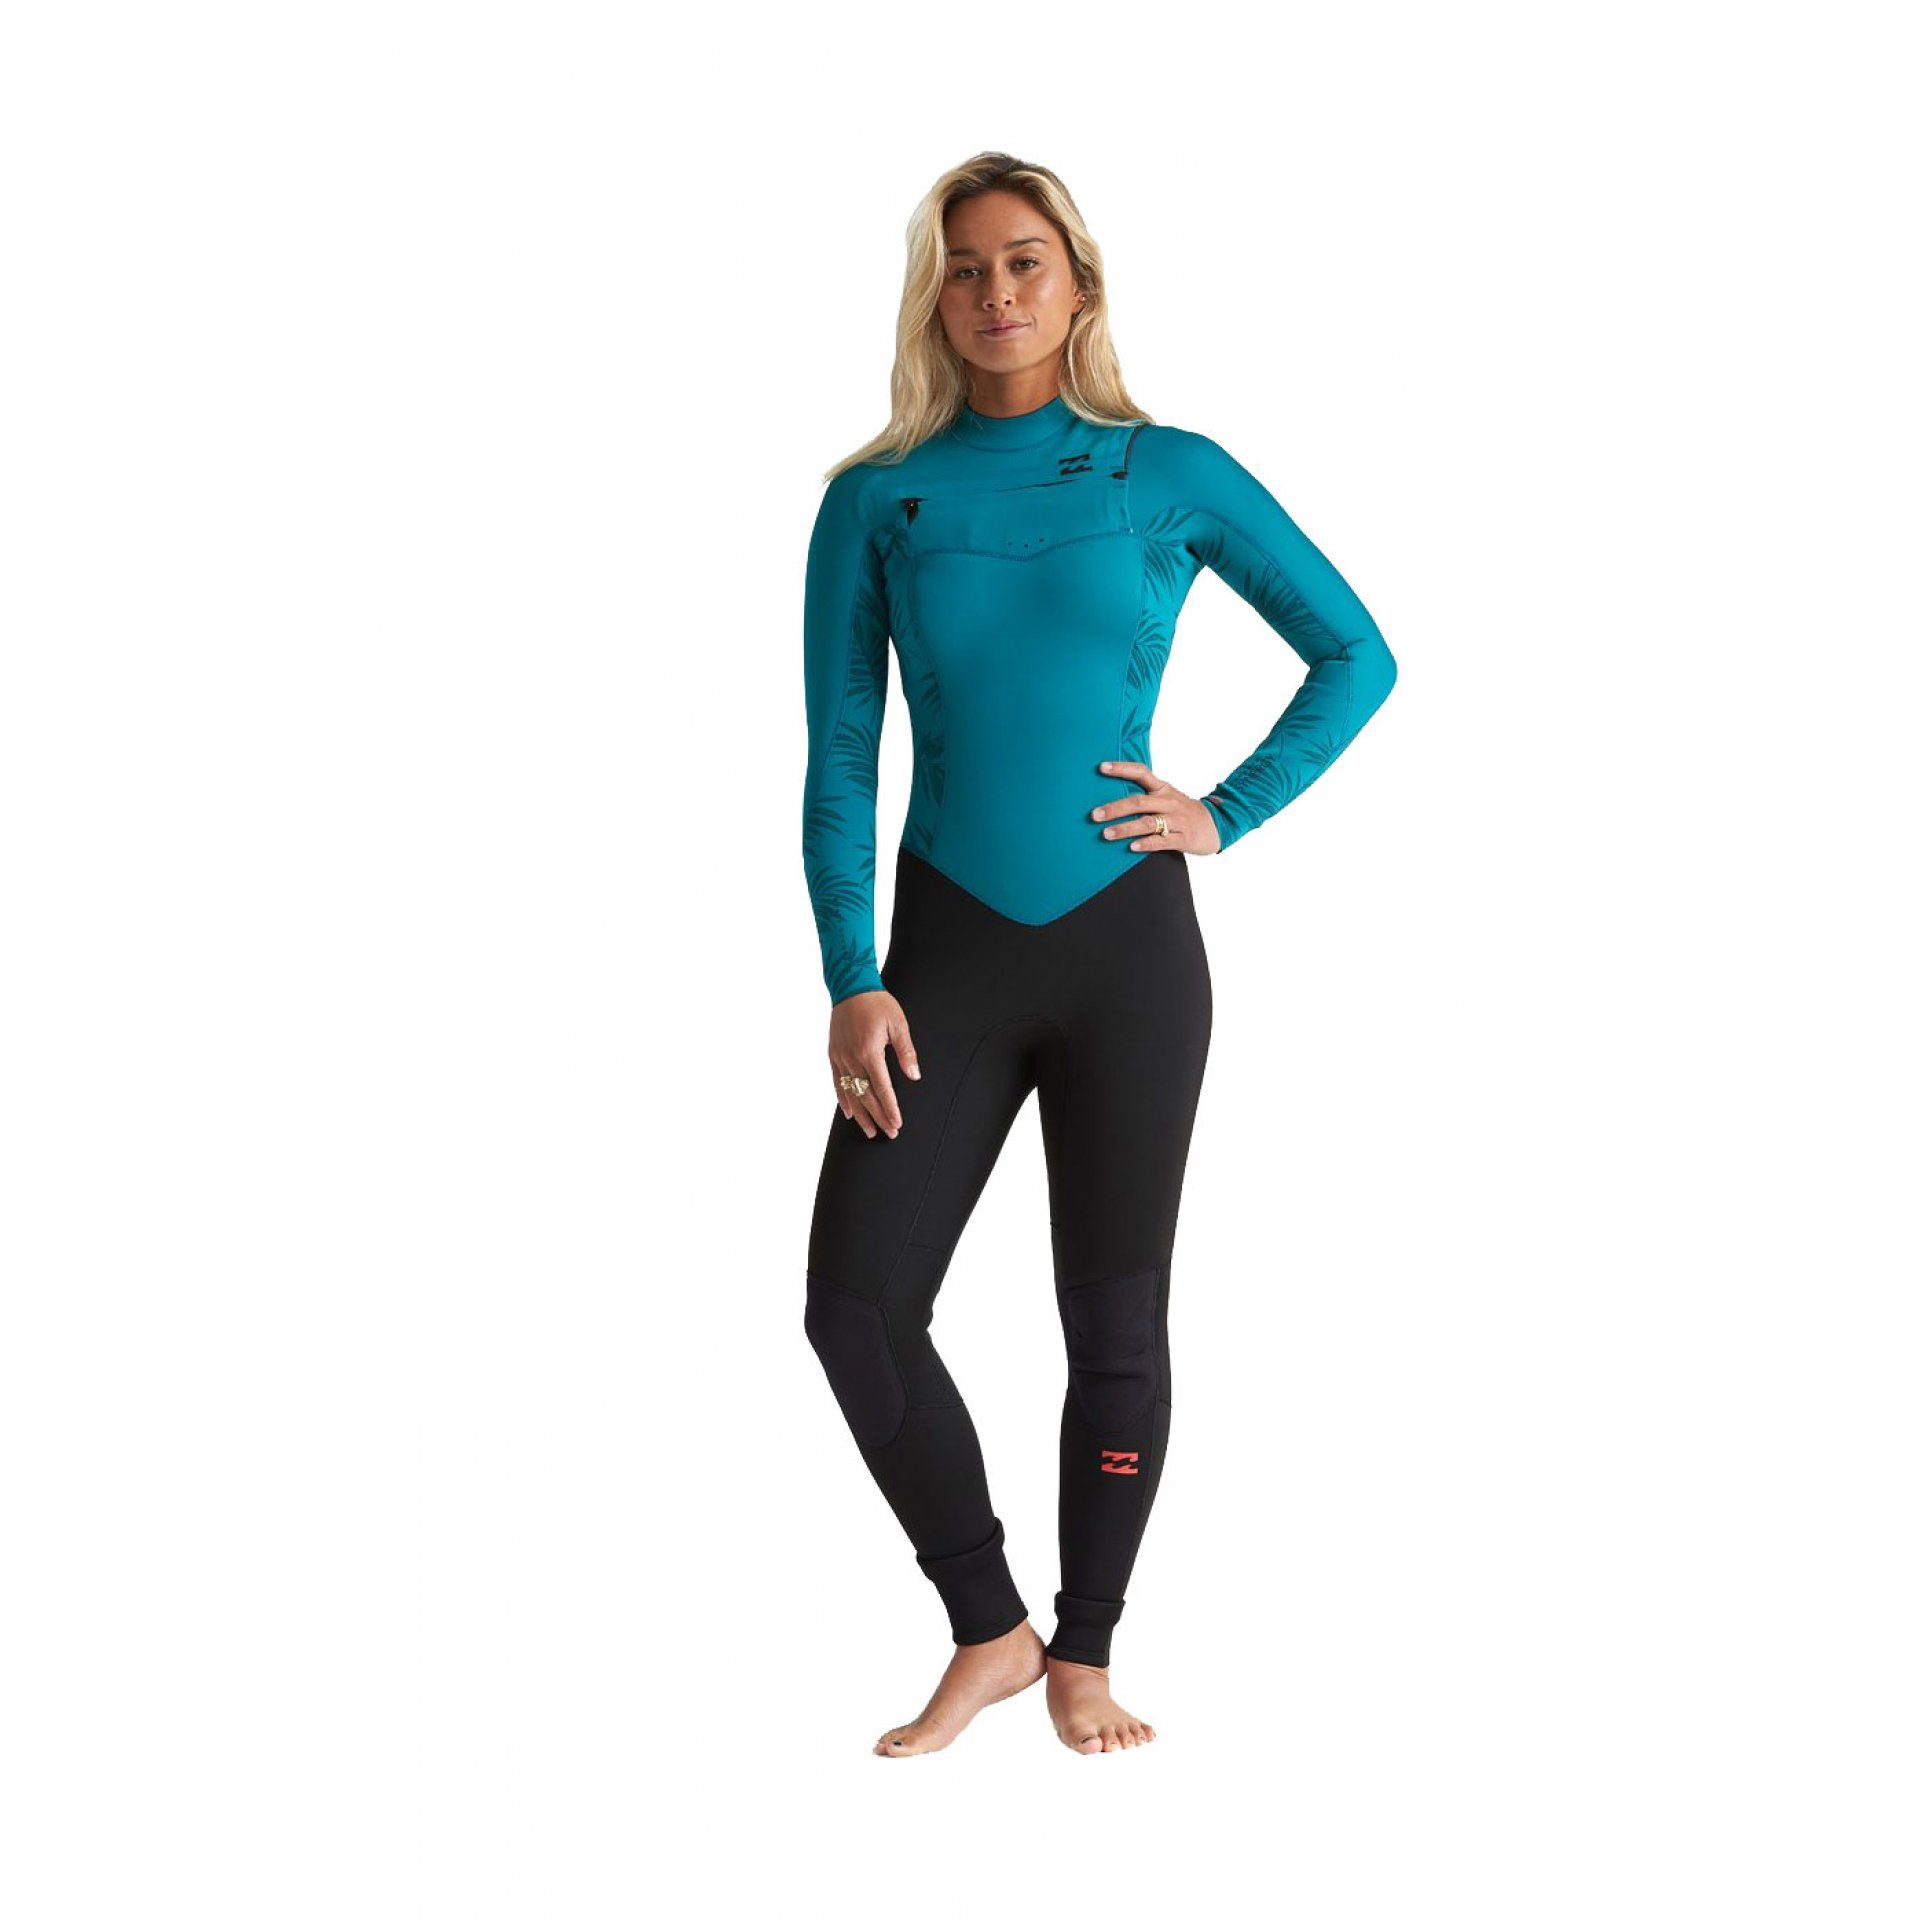 PIANKA NEOPRENOWA BILLABONG 3|2 FURNACE SYNERGY GBS CHEST ZIP BLACK S43G52BIP0 4576 MERMAID